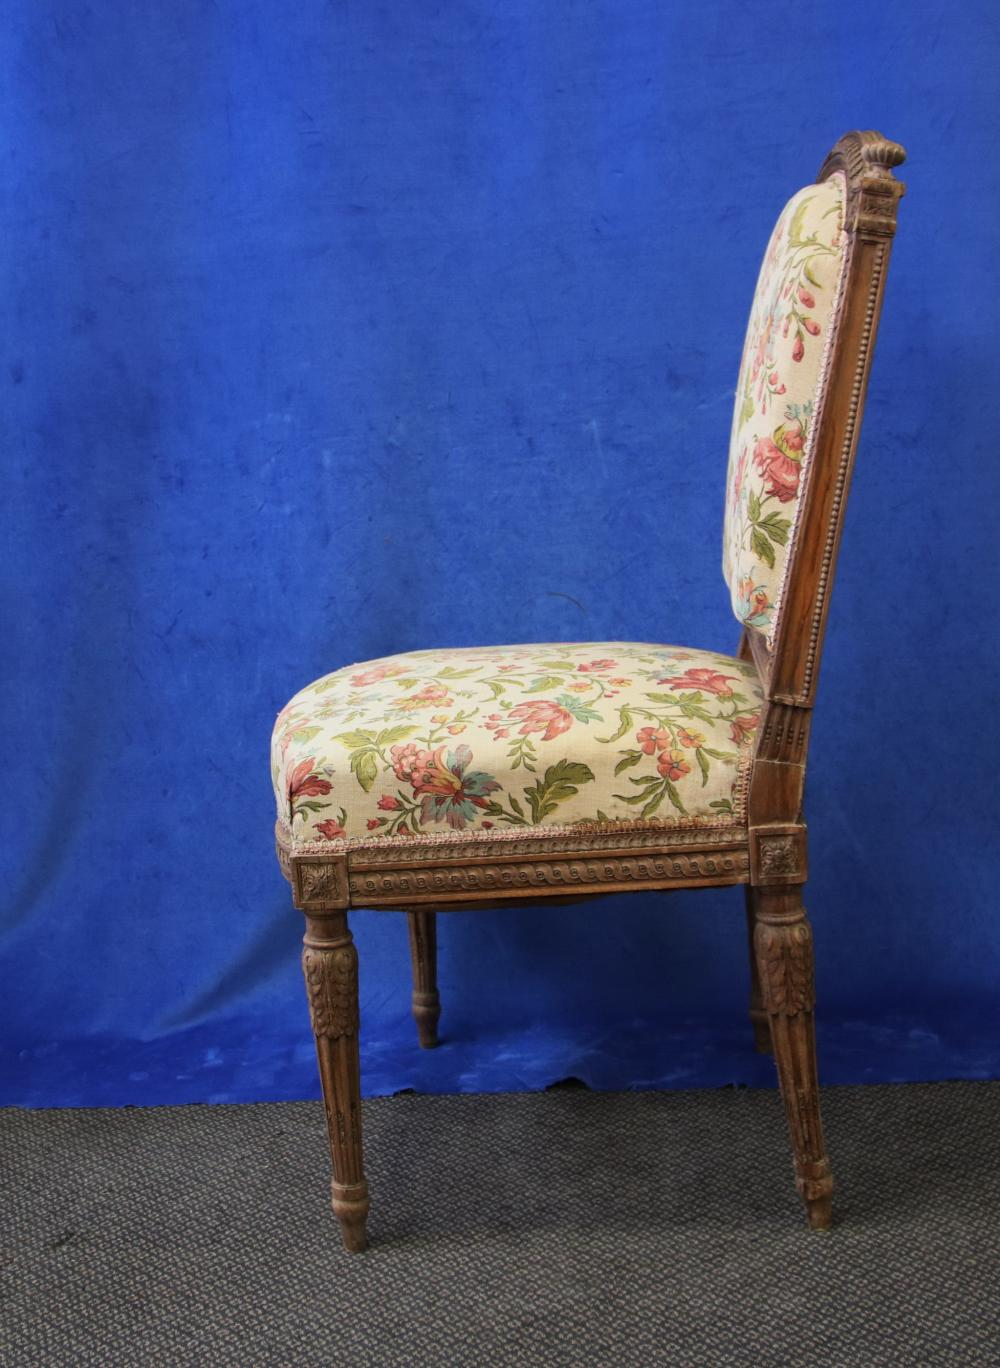 FRENCH LOUIS XV STYLE BEDROOM CHAIR, HAND CARVED OAK FRAME, FLORAL UPHOLSTERY, CIRCA 1920'S,